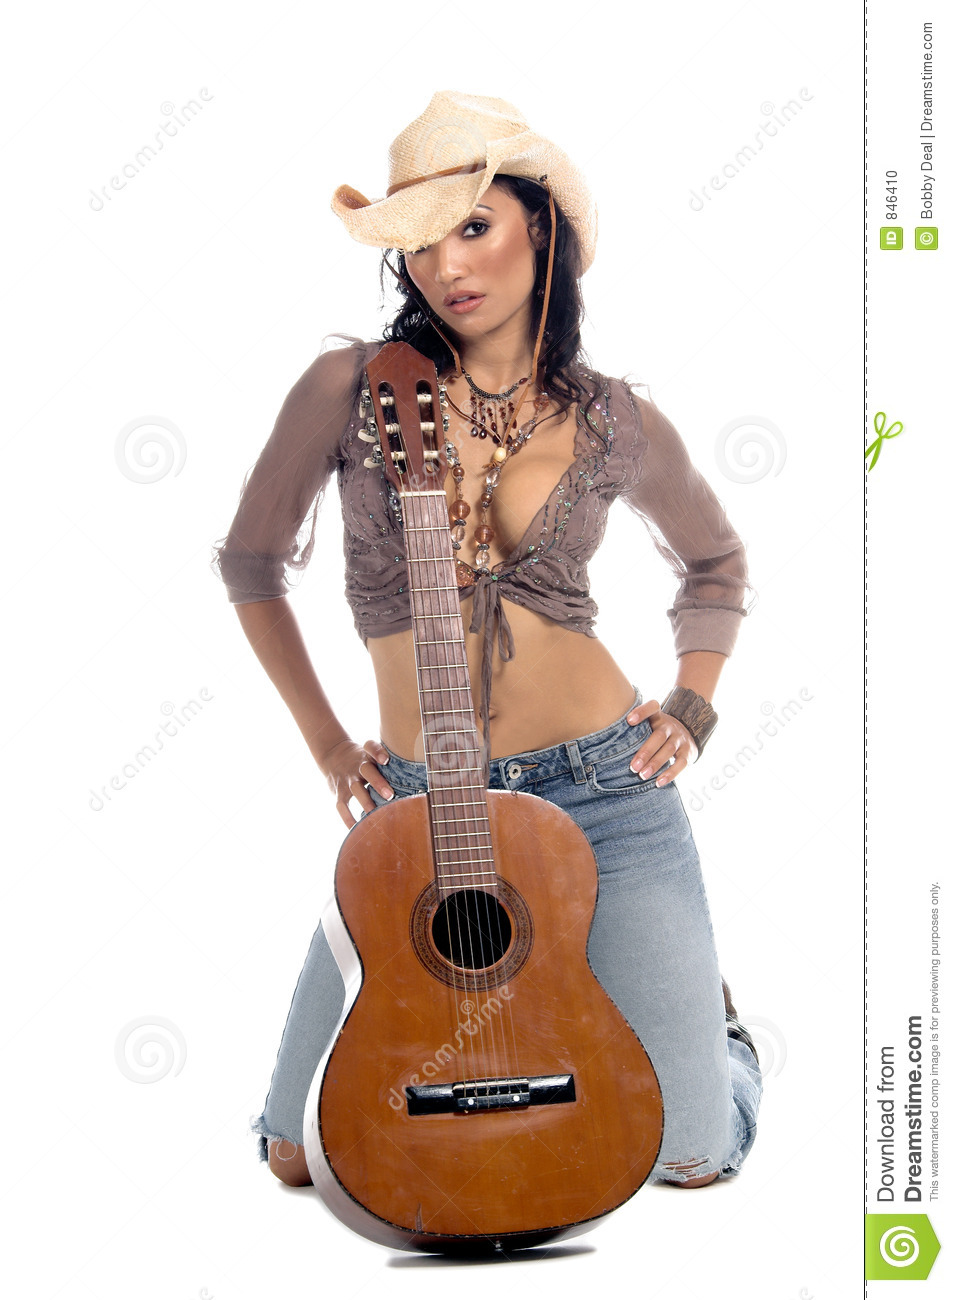 Cowgirl Guitar Stock Photo Image 846410